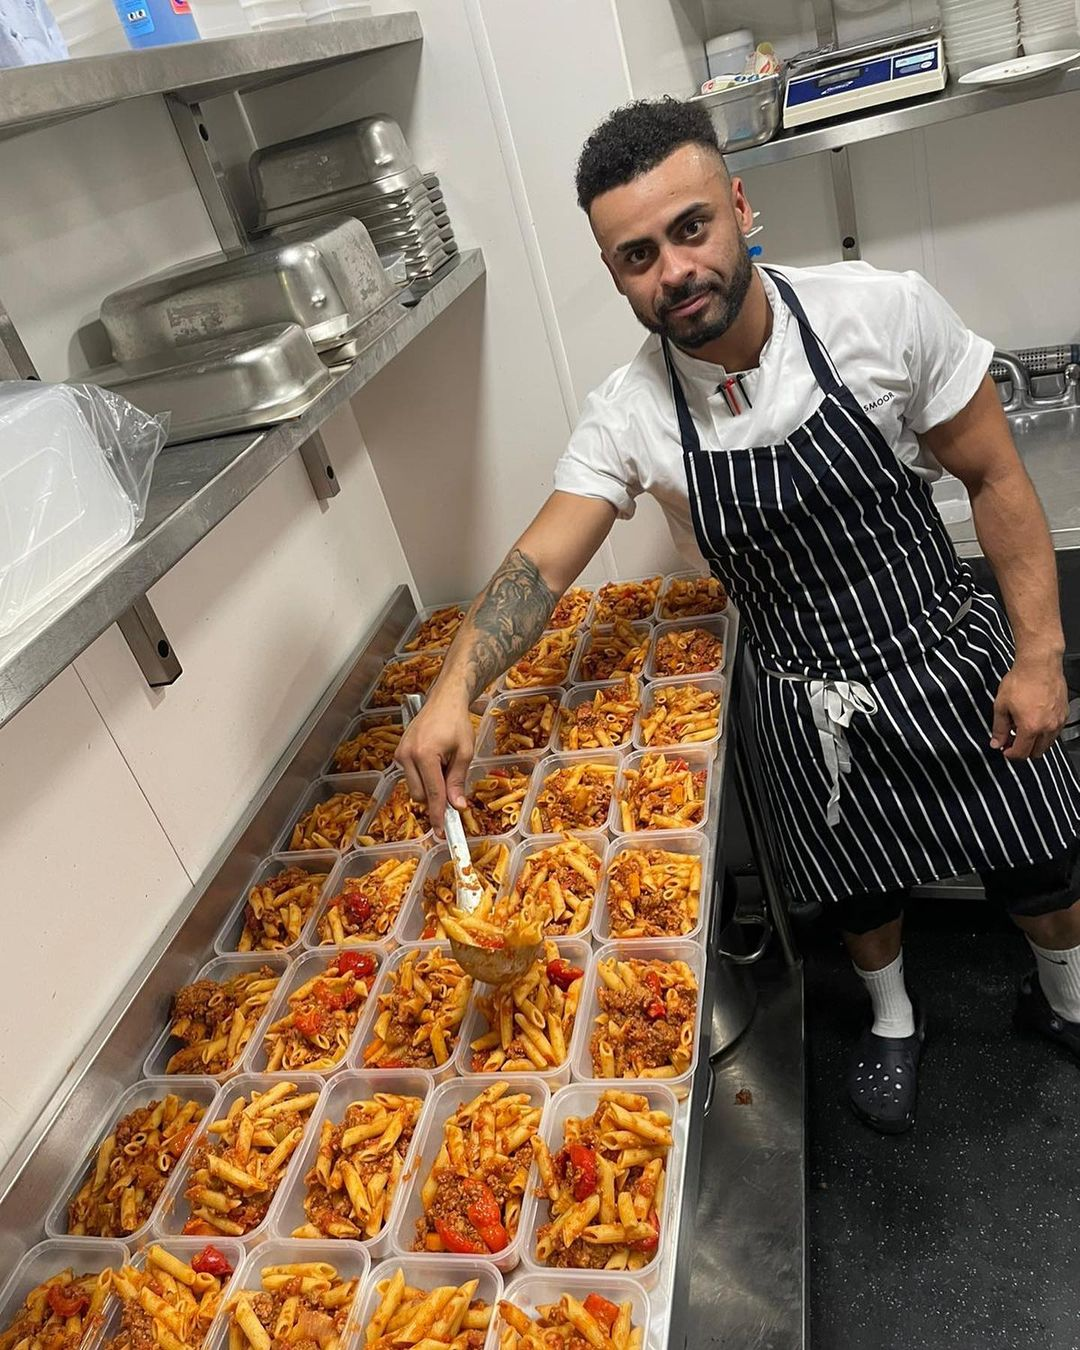 The chef feeding Manchester's most vulnerable families   Mary-Ellen McTague – Manc of the Month September 2021, The Manc